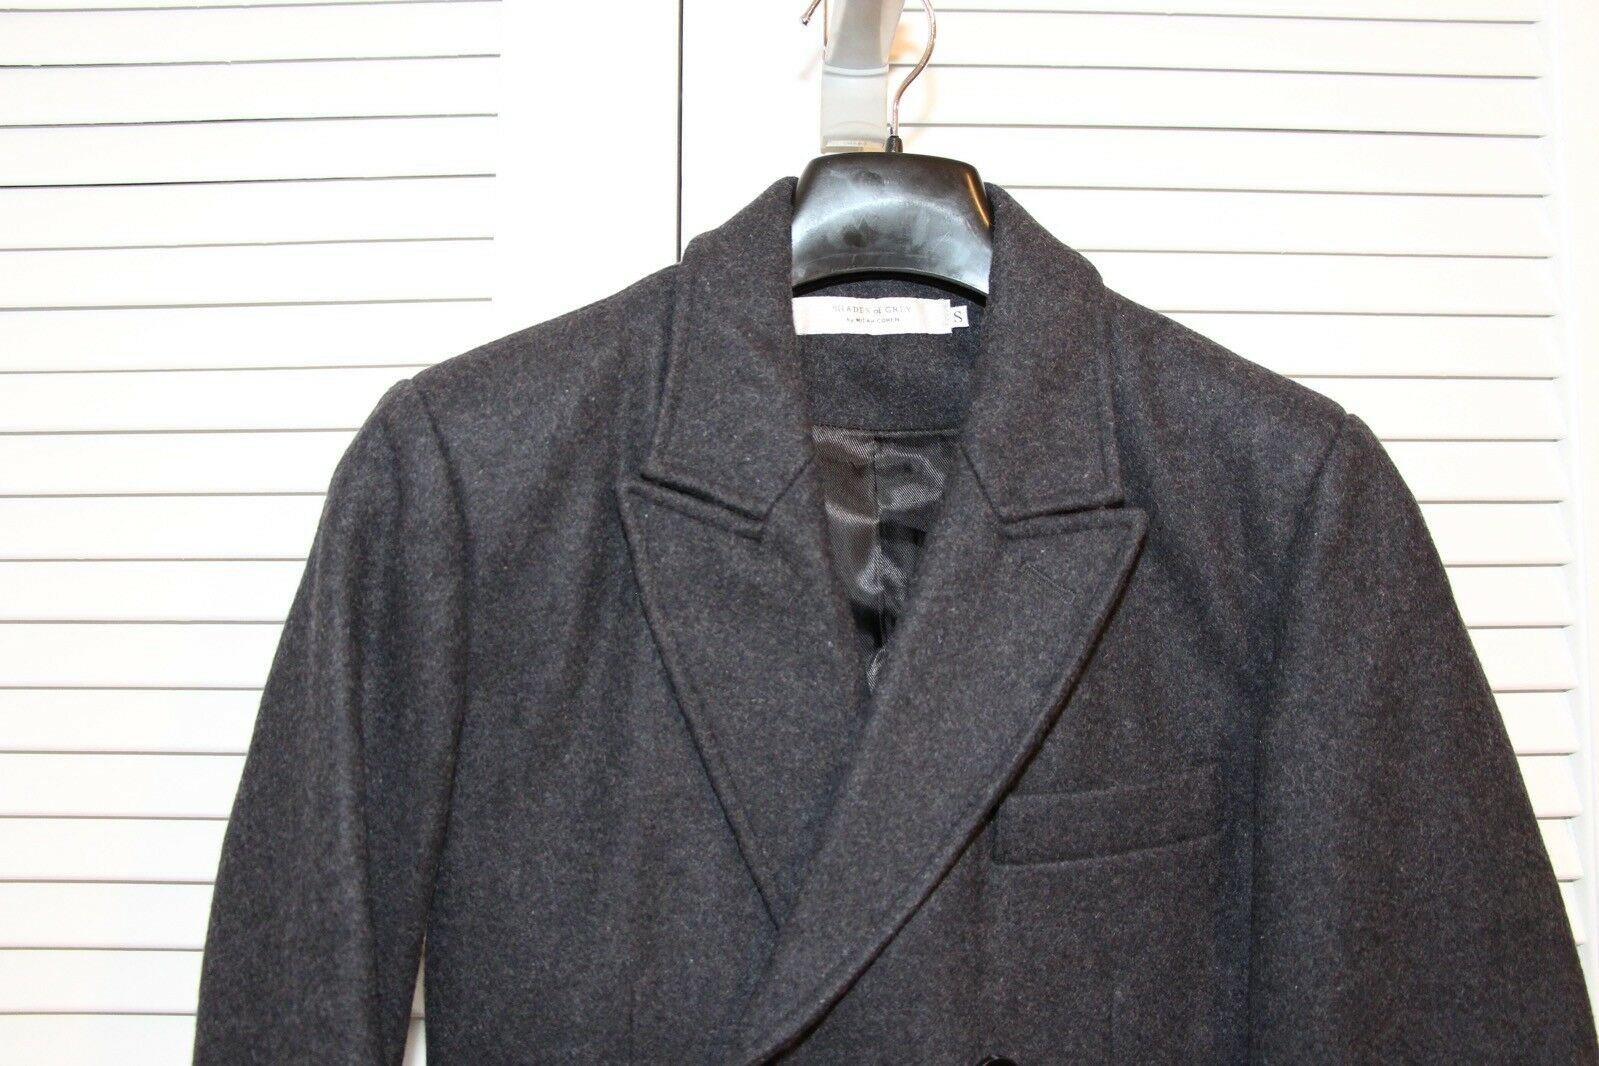 Shades of grigio by Micah Slim Cohen Wool Blend Slim Micah Fit Charcoal grigio Blazer Excellent ac7747